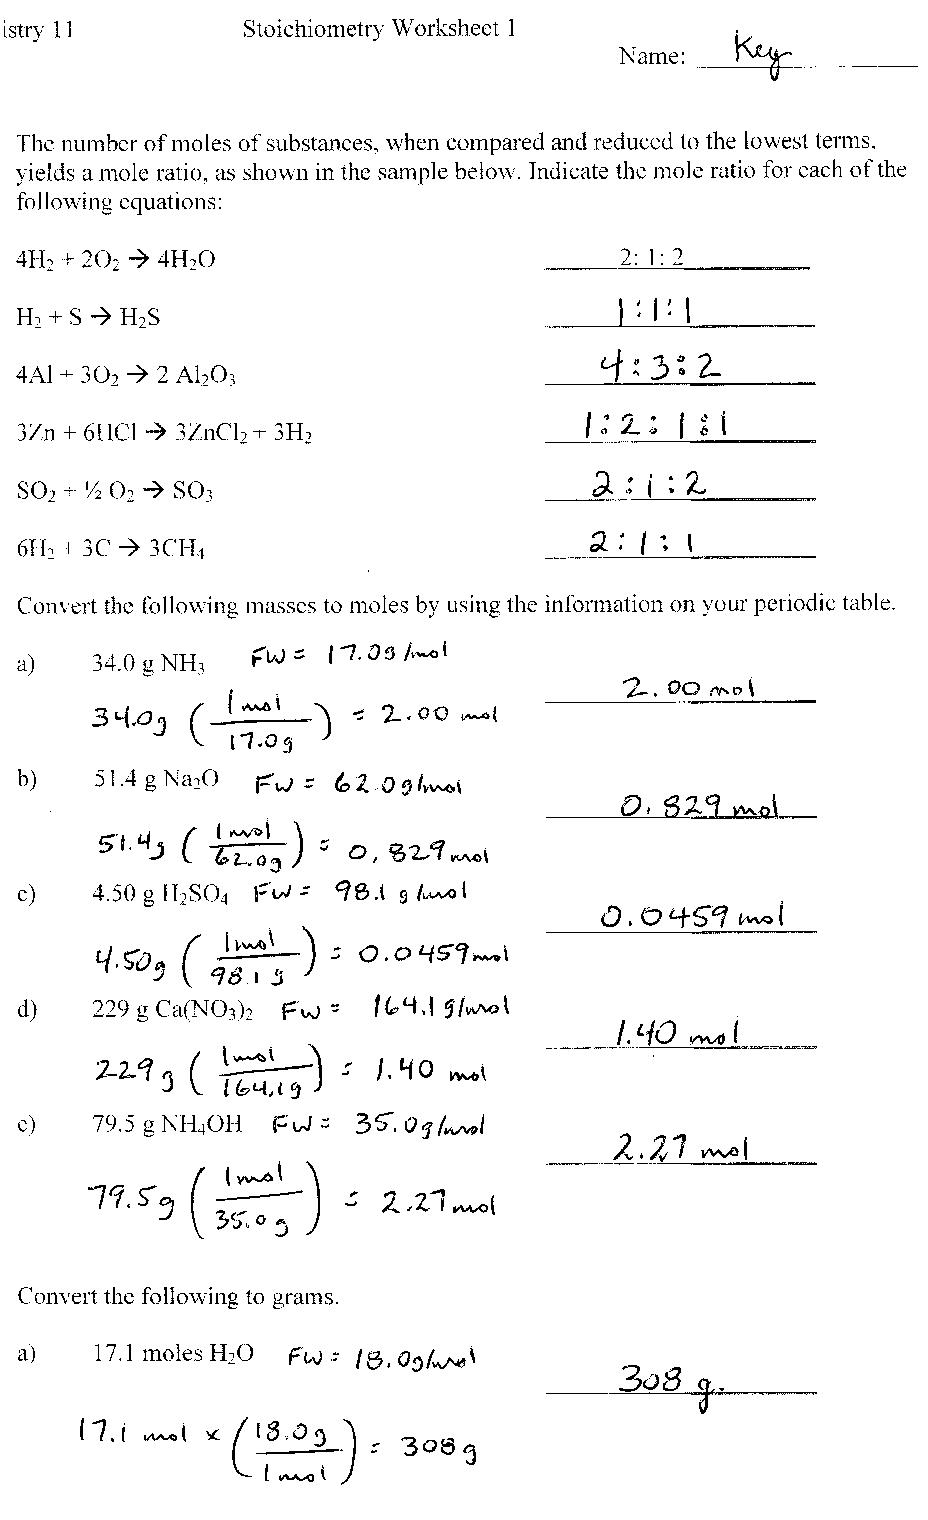 Chemistry Worksheet Answers  olympiapublishers.com Intended For Balancing Nuclear Equations Worksheet Answers